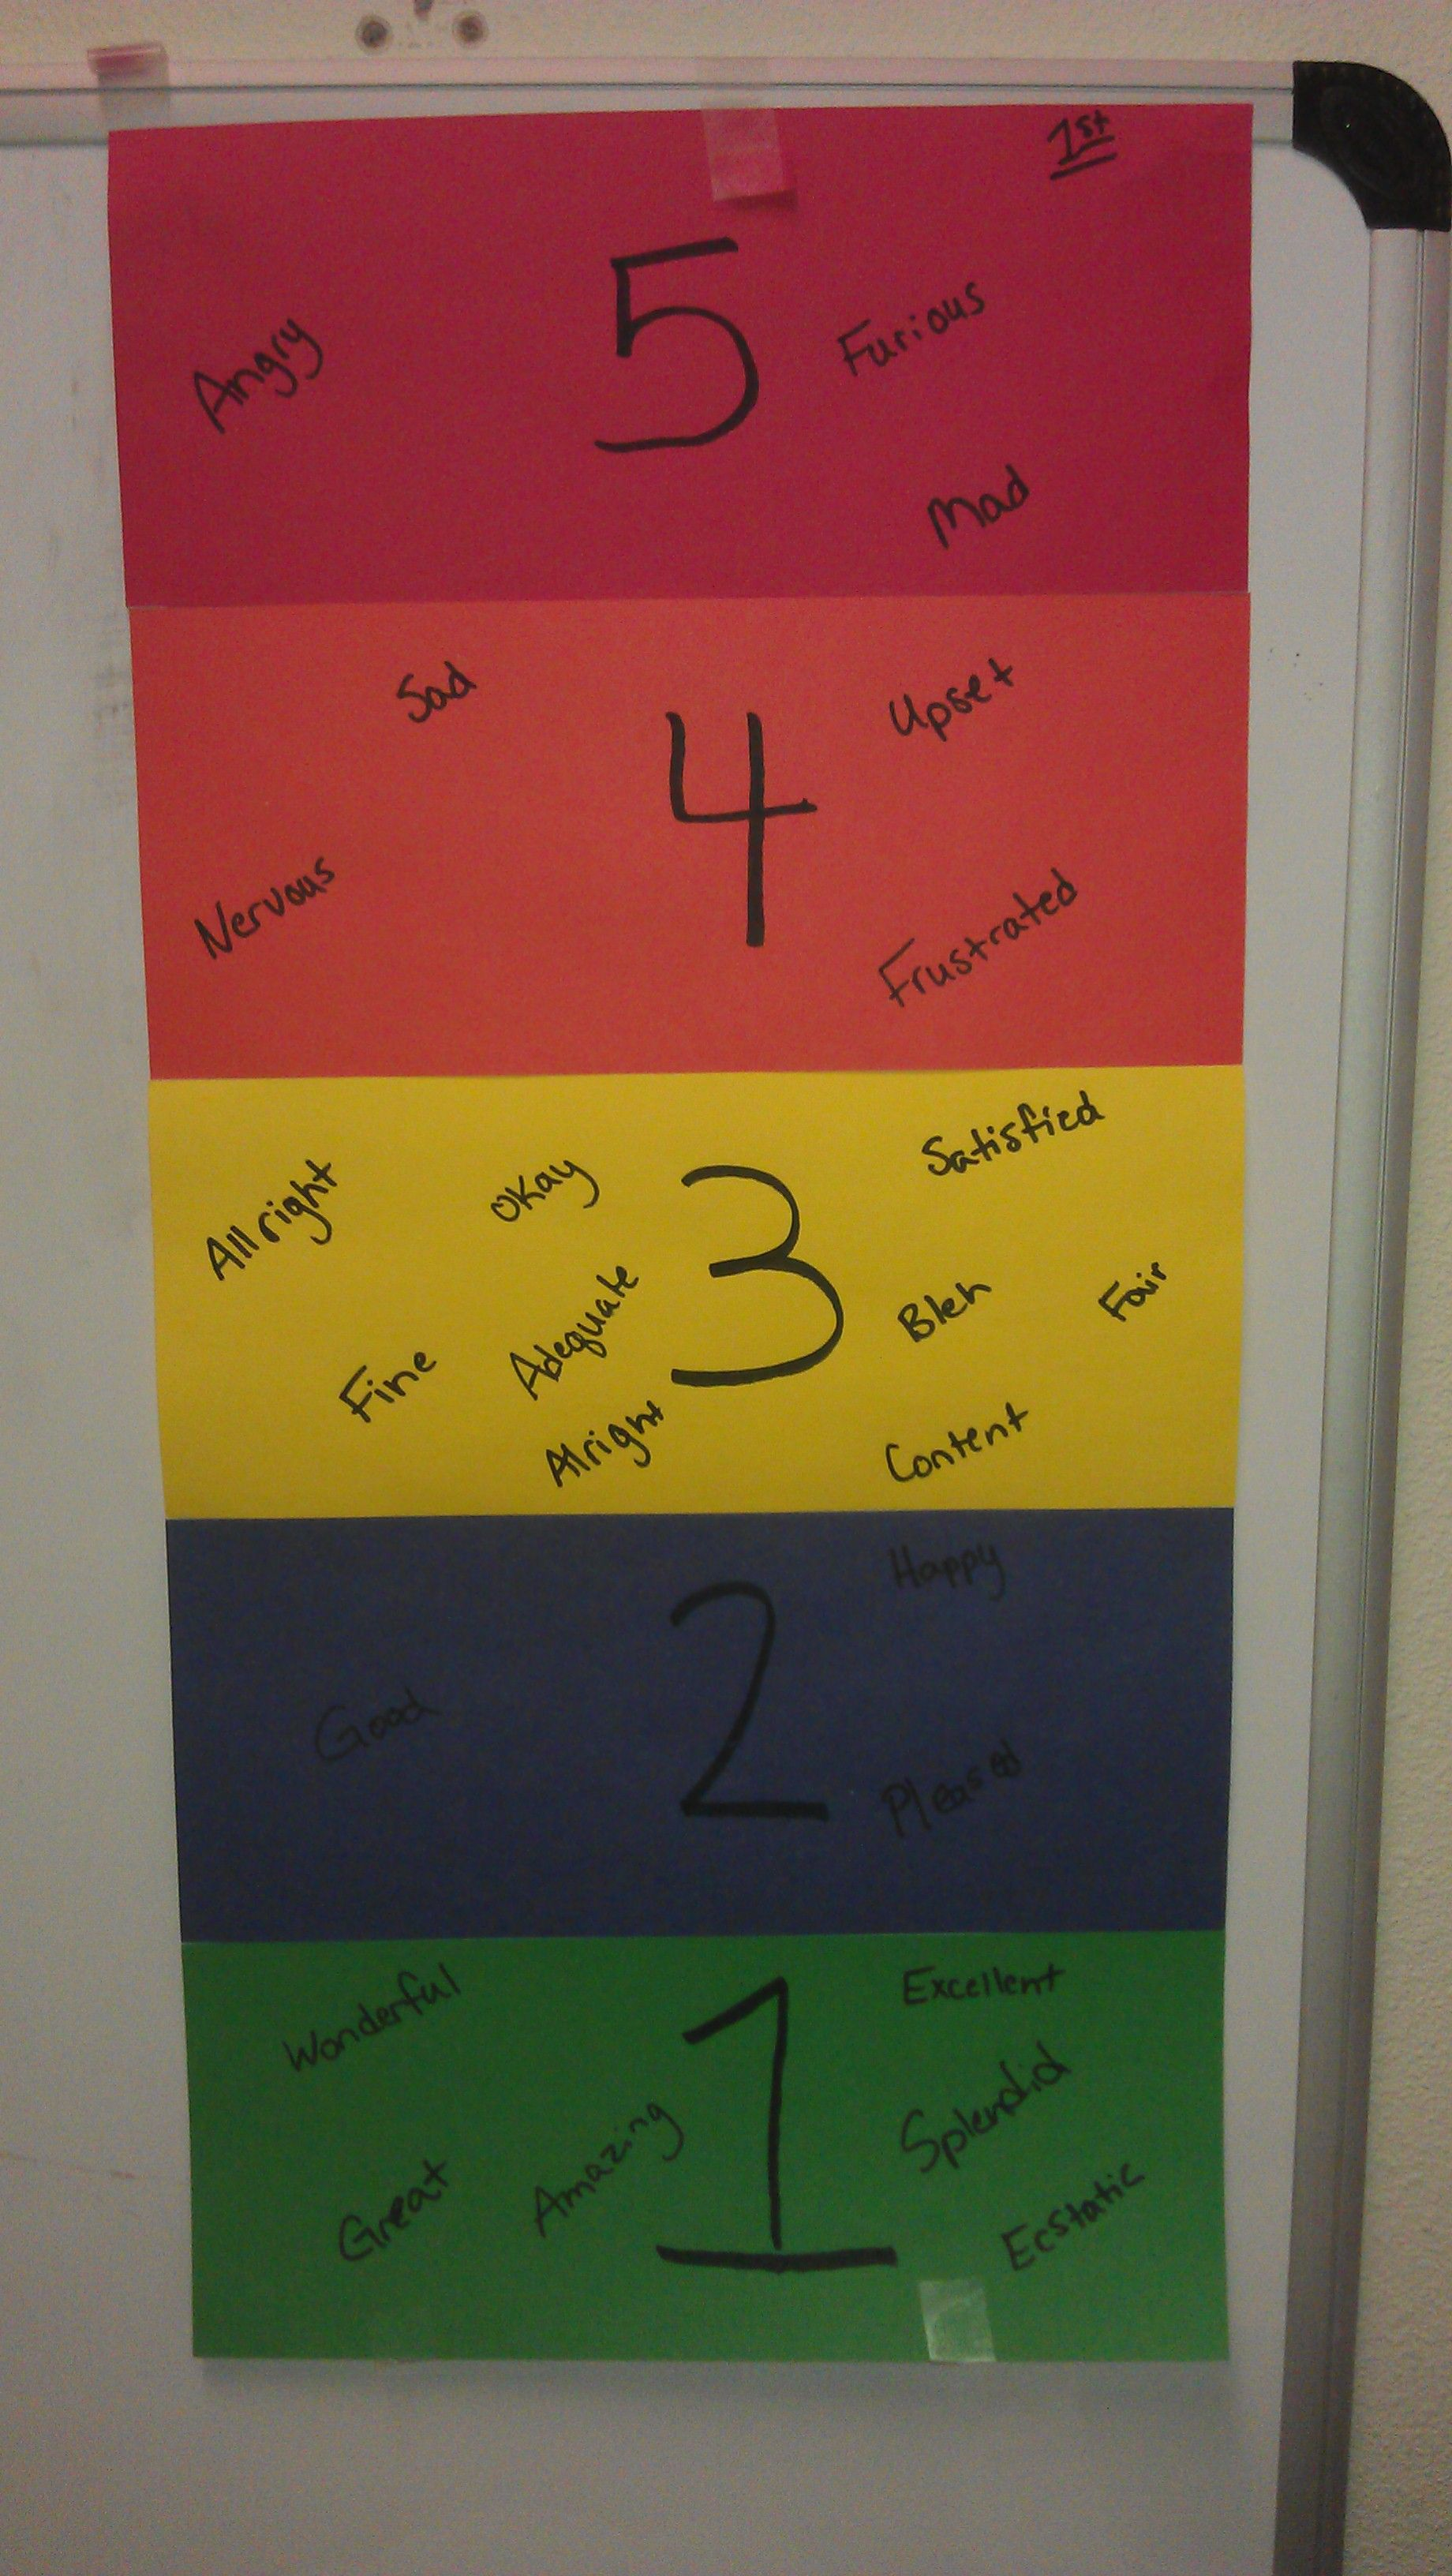 5pt Scale Social Skills Activity To Put The Level In The Students Words